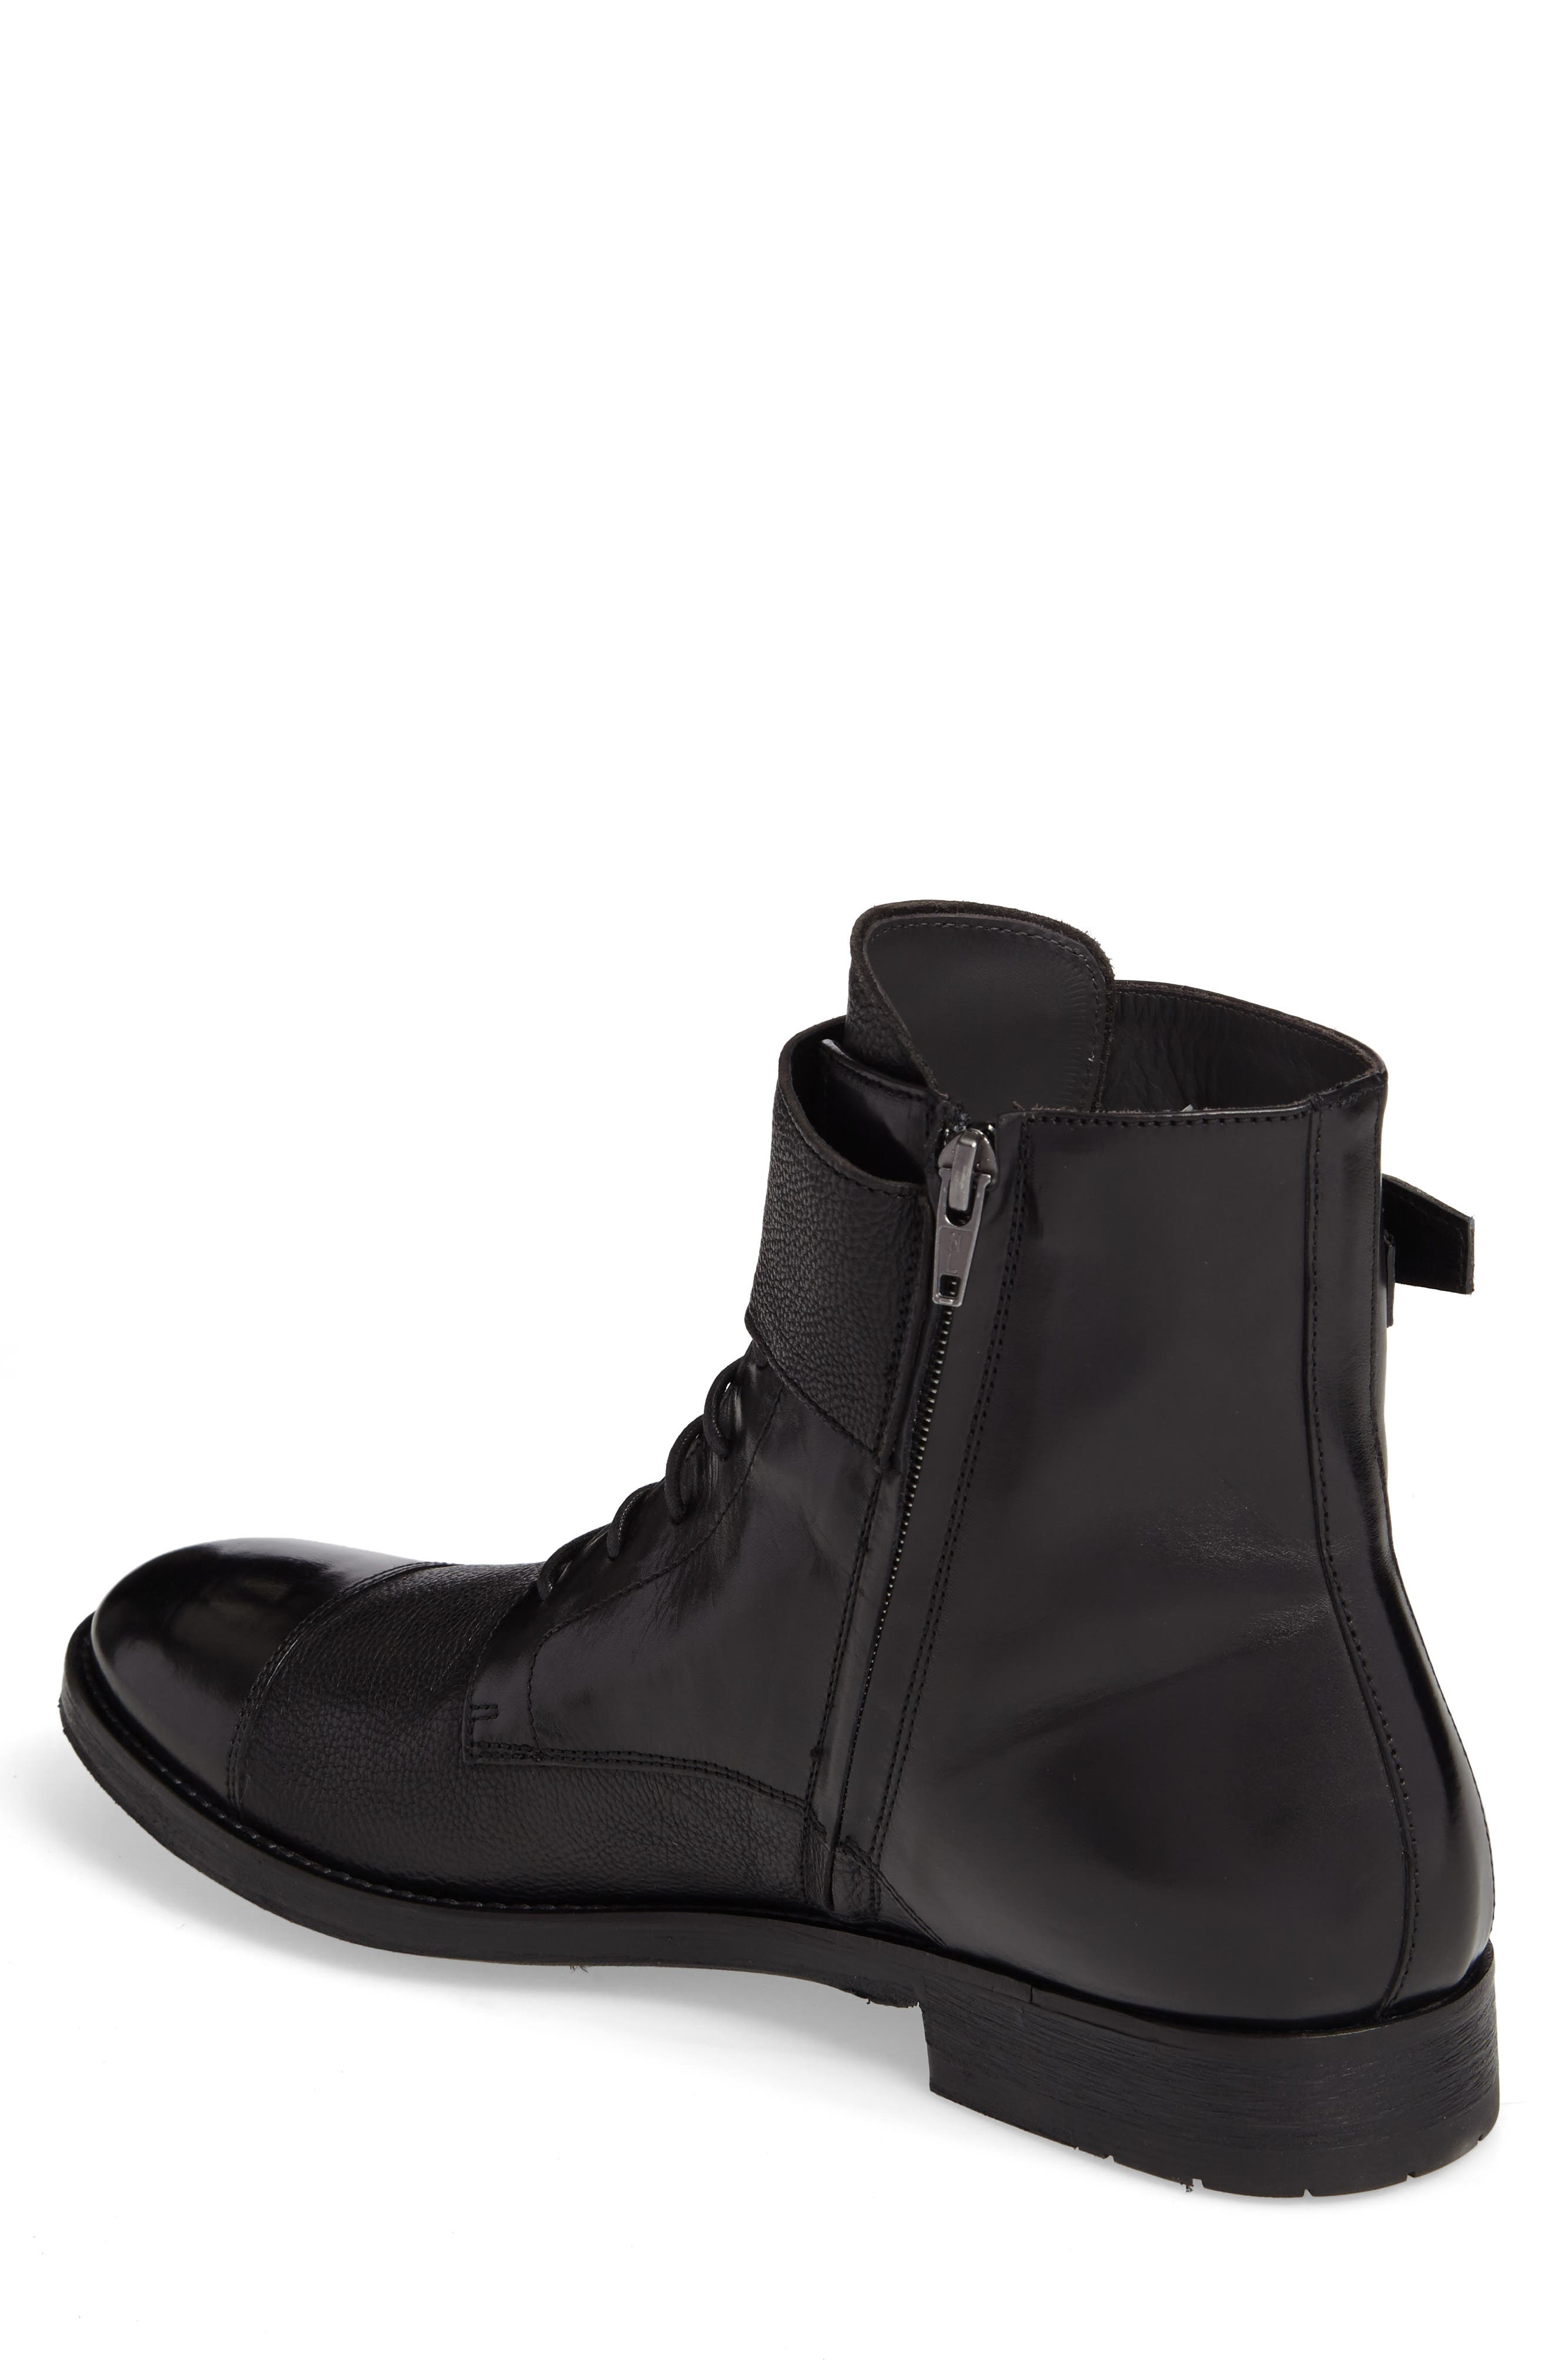 Flyboy Cap Toe Boot,                             Alternate thumbnail 2, color,                             001